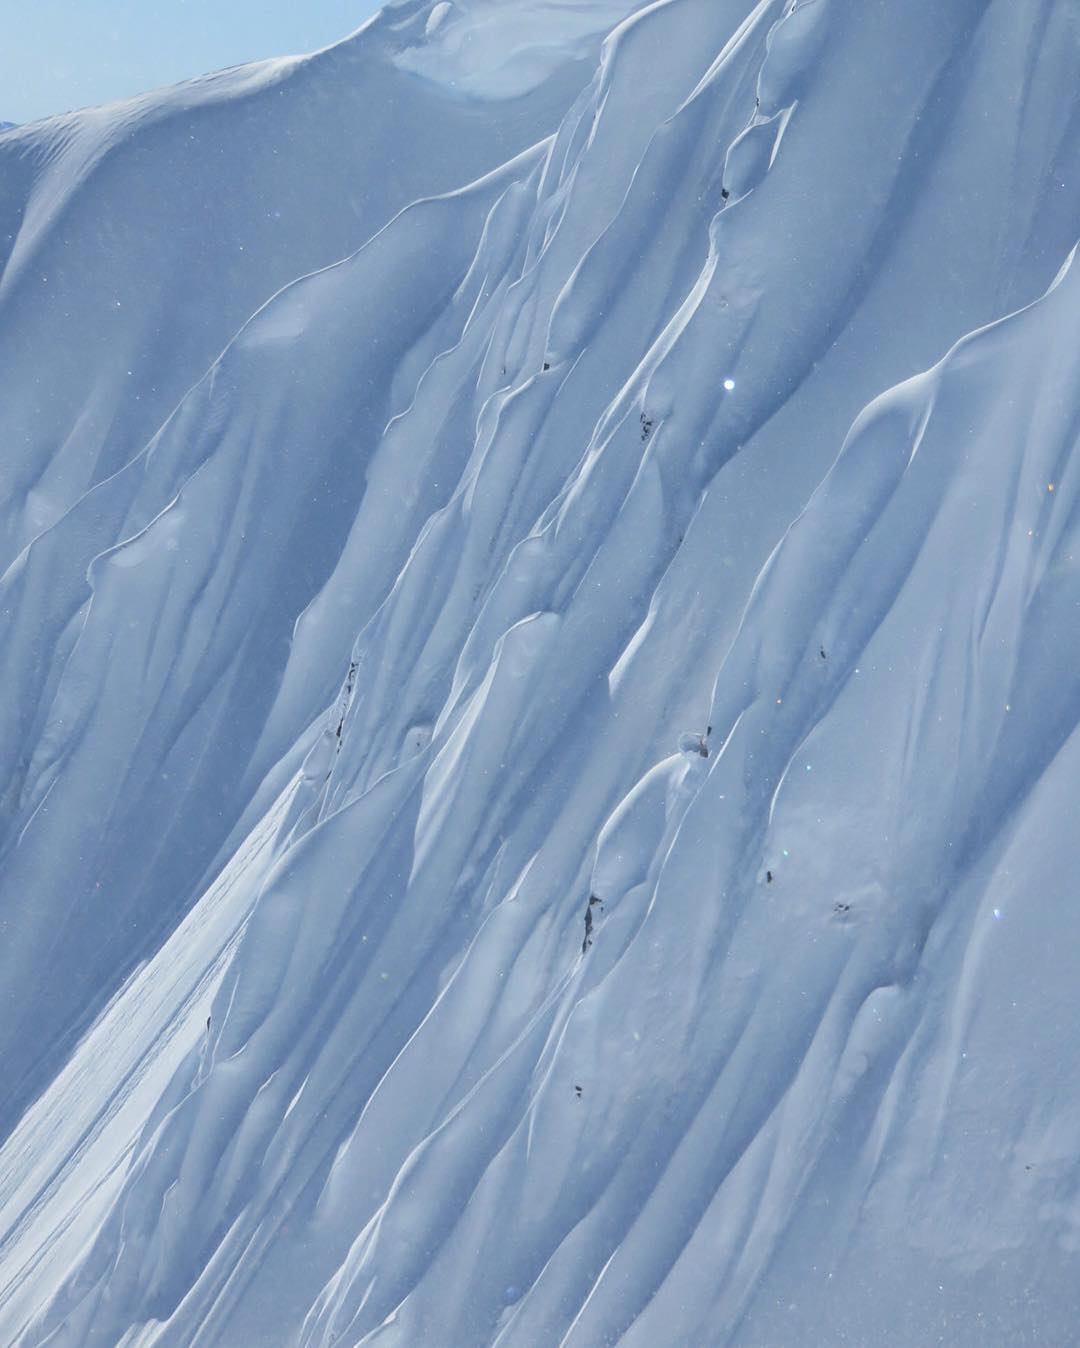 #Repost @johnjamun ・・・ This is the same face as the last pov I posted, can you tell? Kinda got lost in there dodging sluffaluffagus. Thanks for getting us out there @alaskasnowboardguides #spilointen